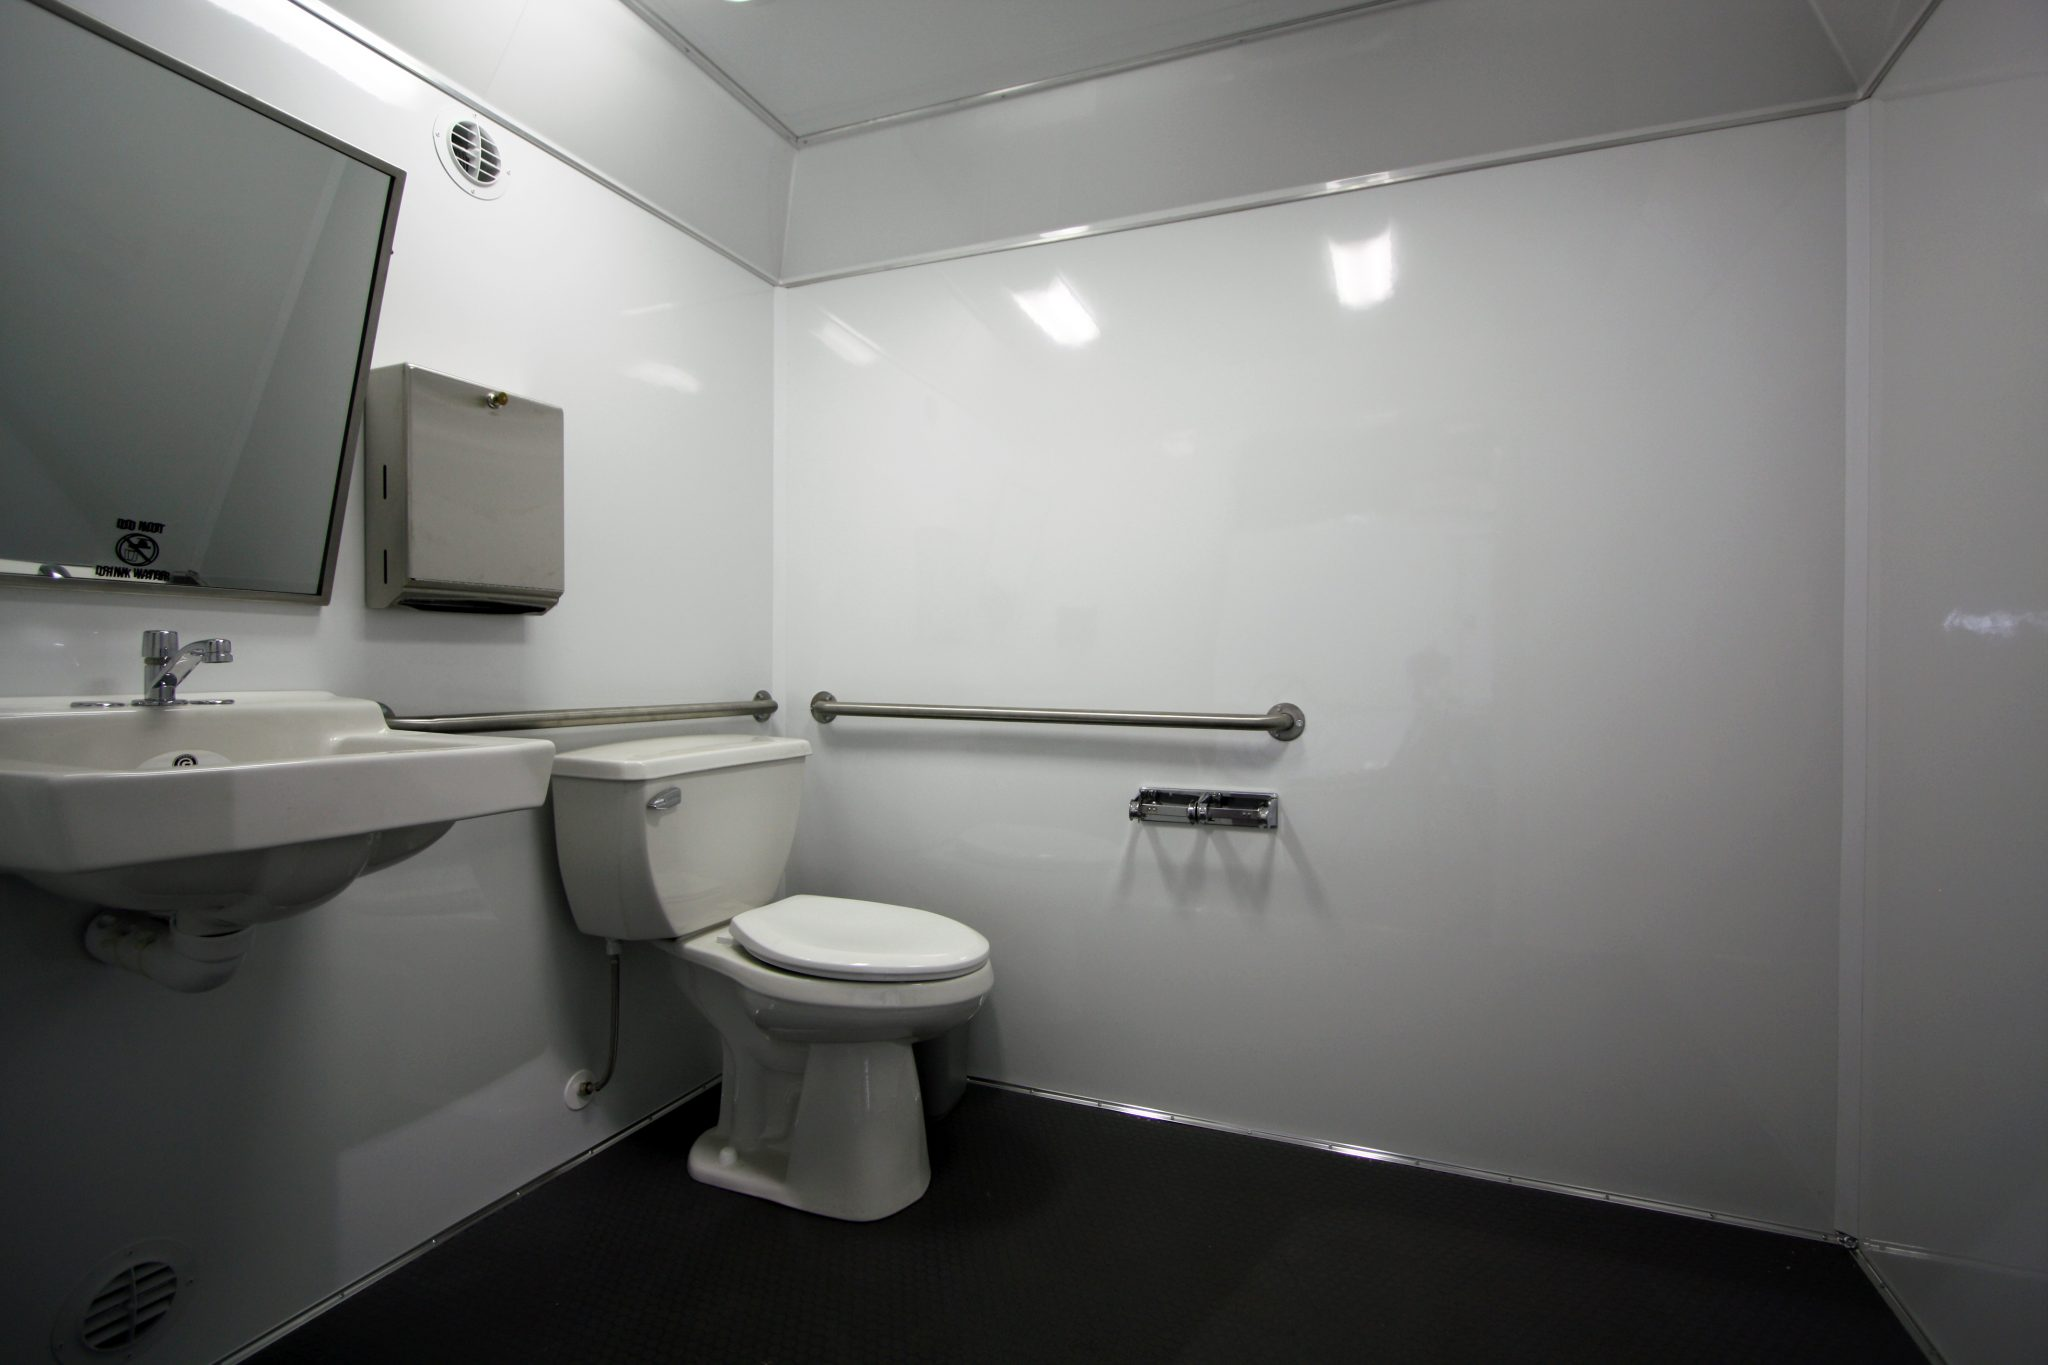 Toilets For Rent : Shower trailers for rent things to know